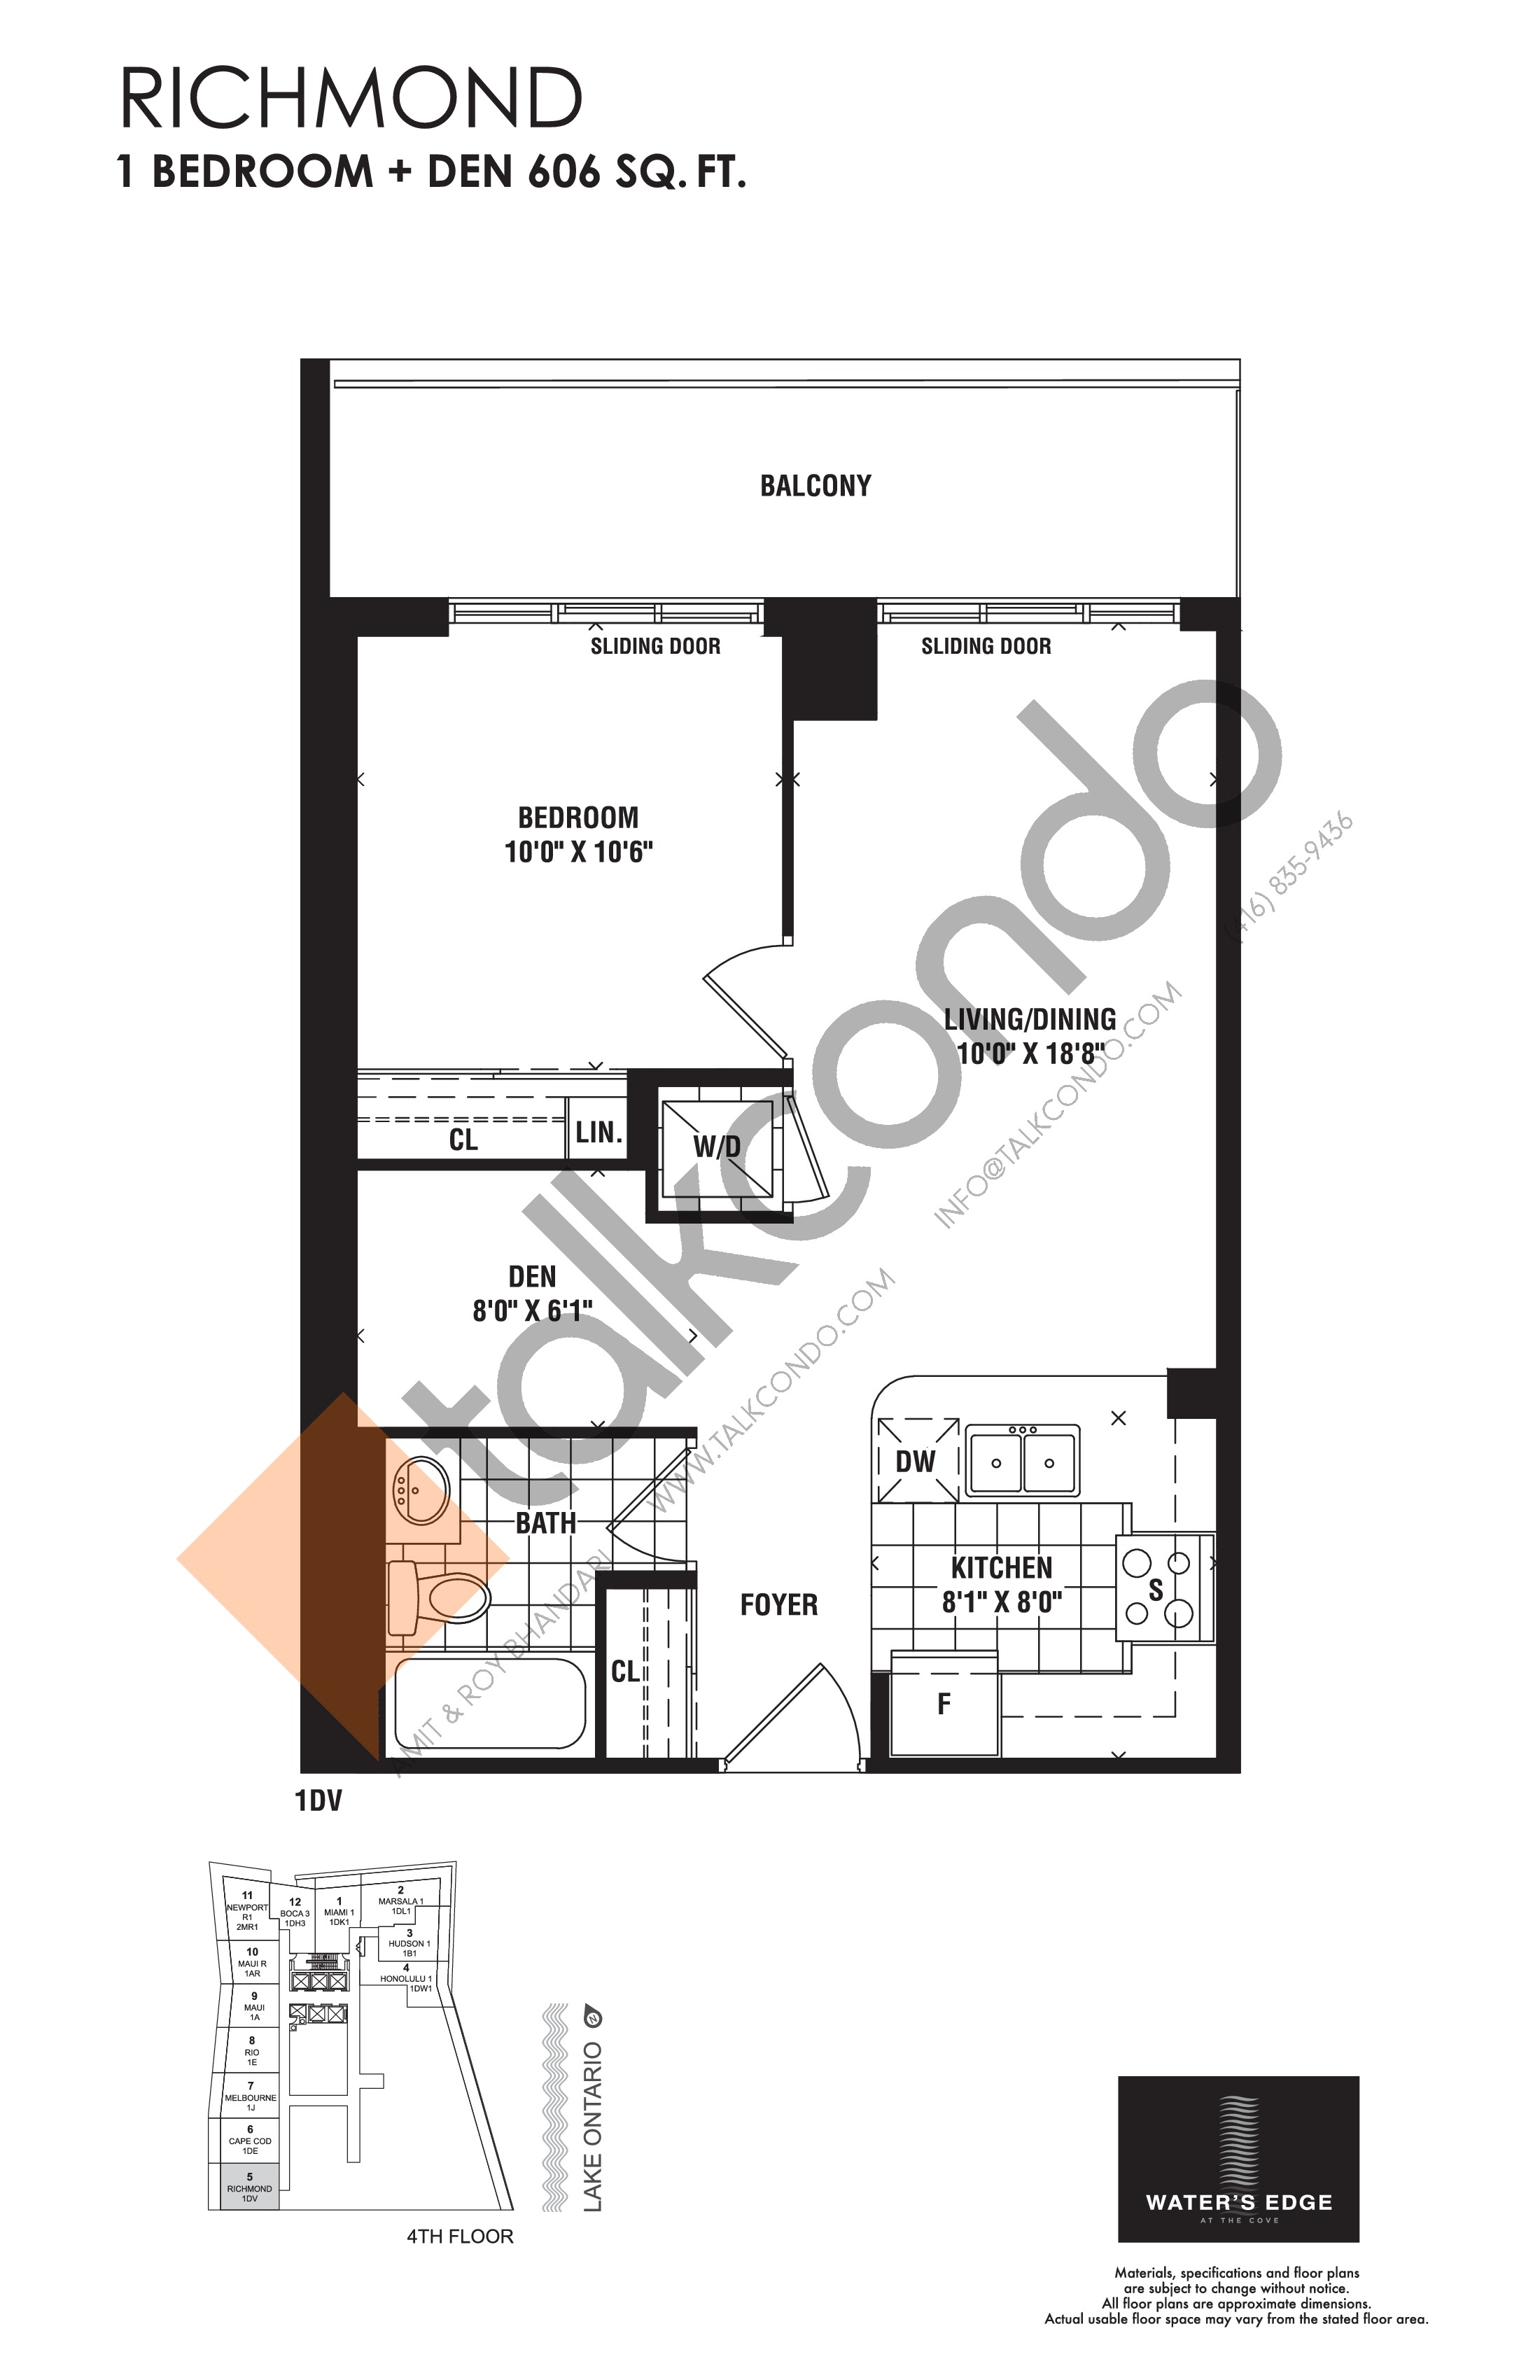 Richmond Floor Plan at Water's Edge at the Cove Condos - 606 sq.ft